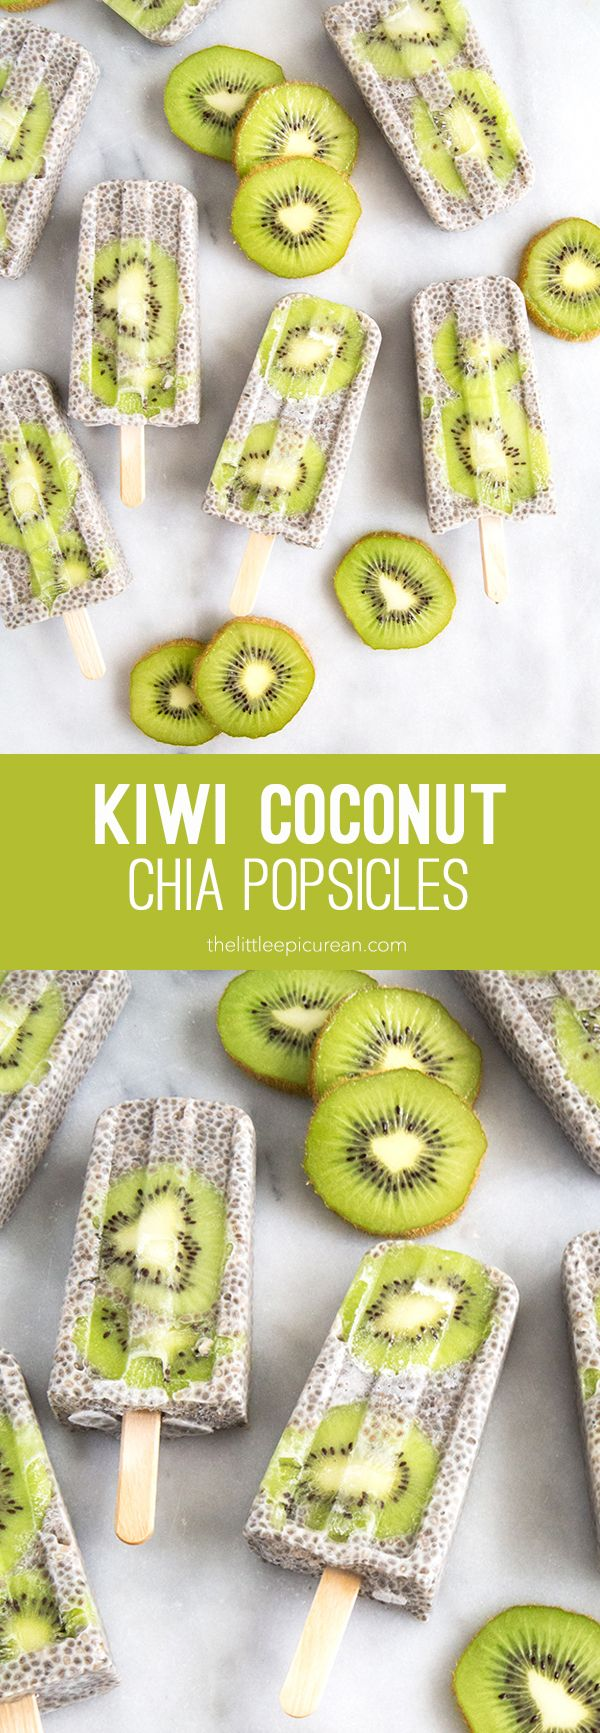 Kiwi slices floating among a sea of coconut chia pudding. These kiwi coconut chia popsicles are ...